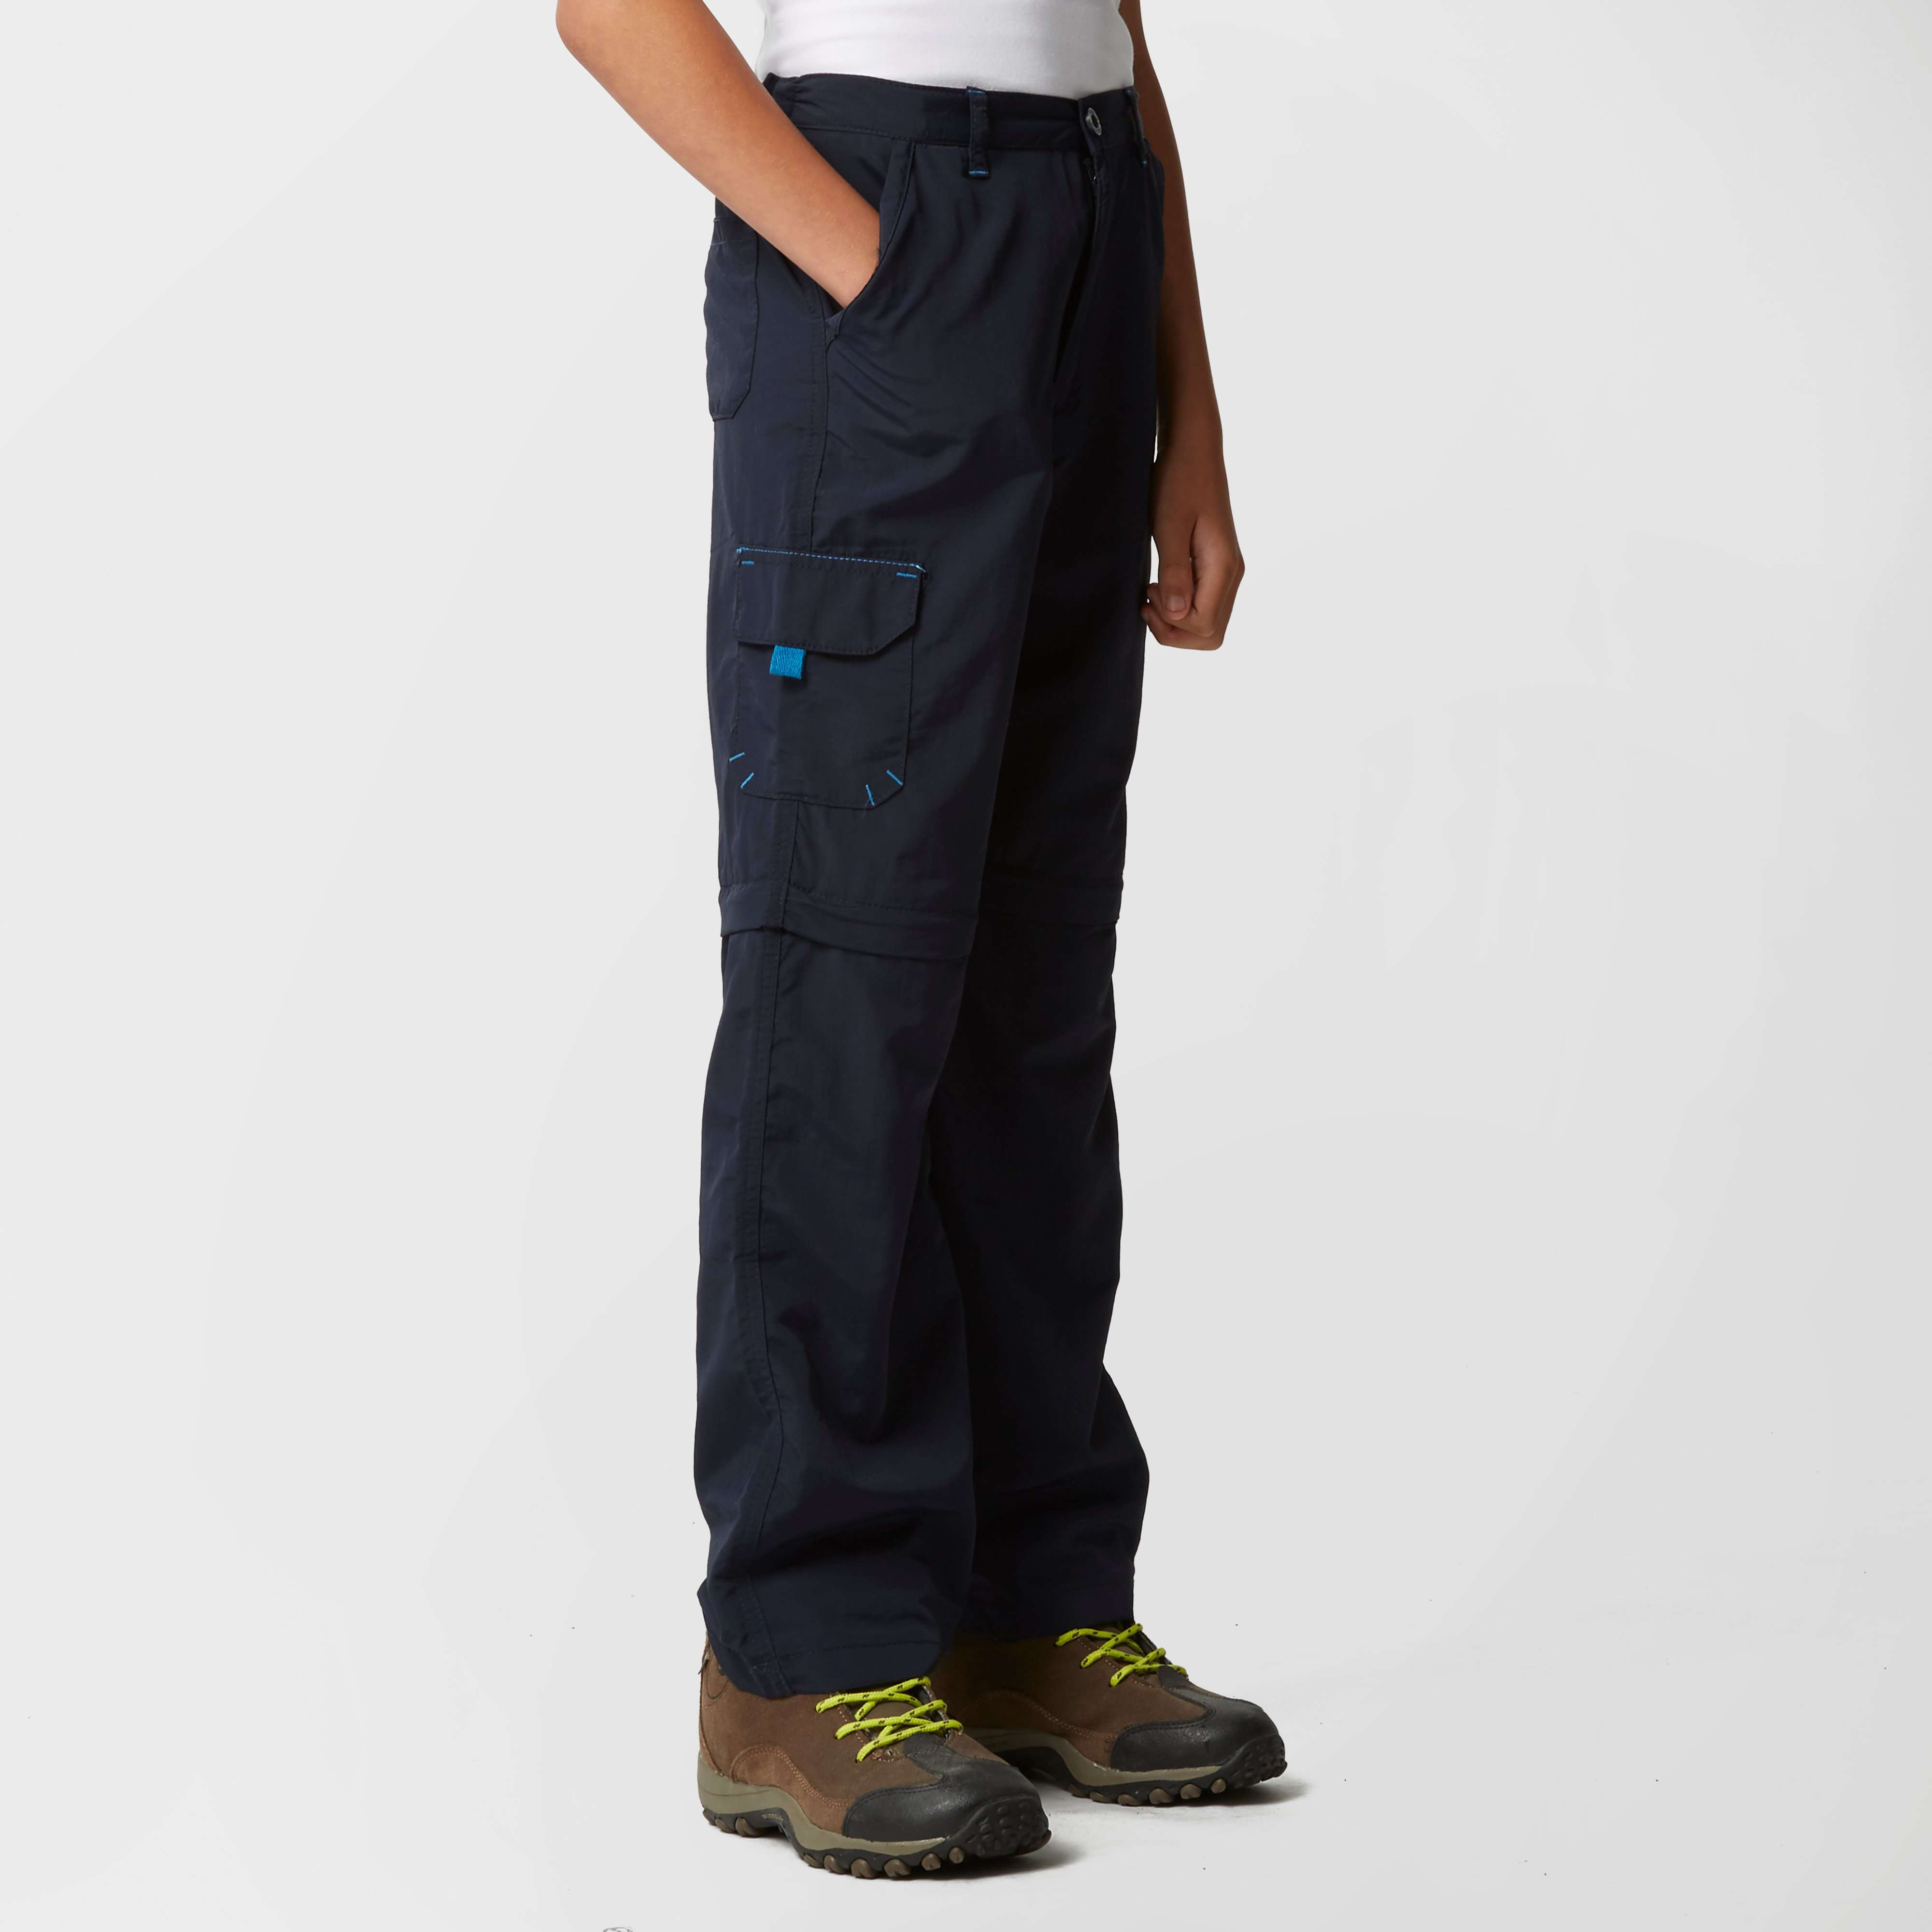 REGATTA Unisex Sorcer Trousers